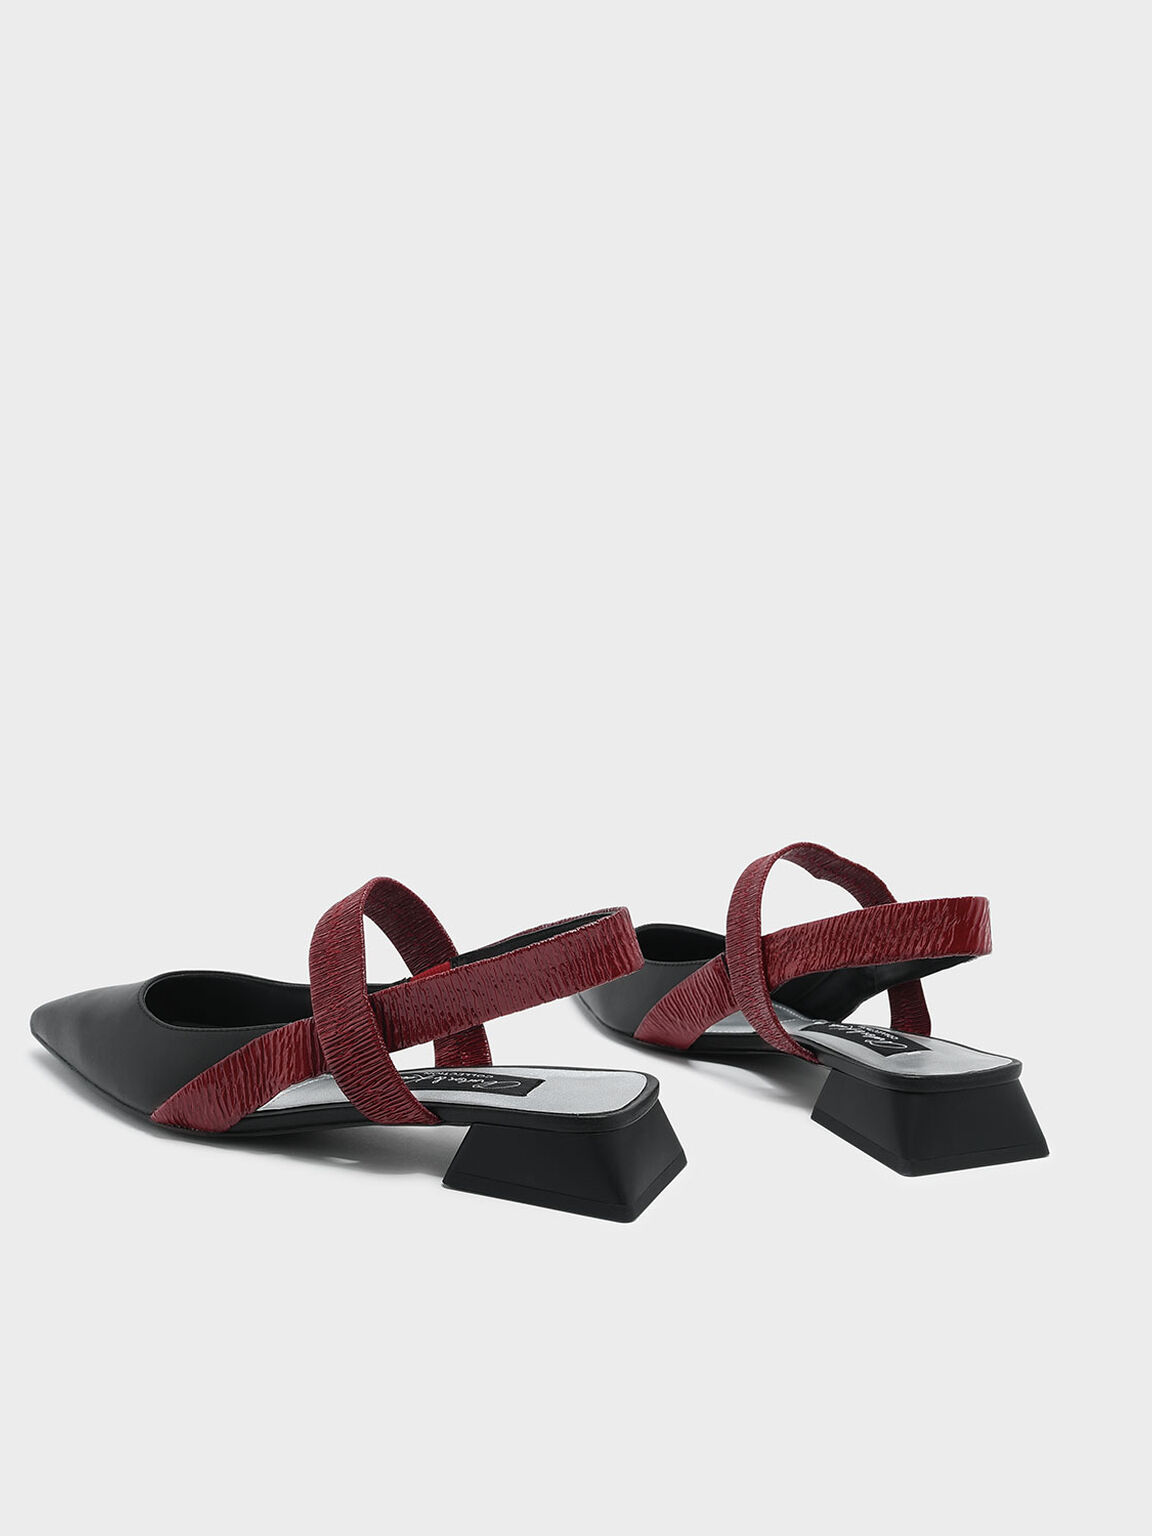 Mary Jane Leather Slingback Sandals, Red, hi-res